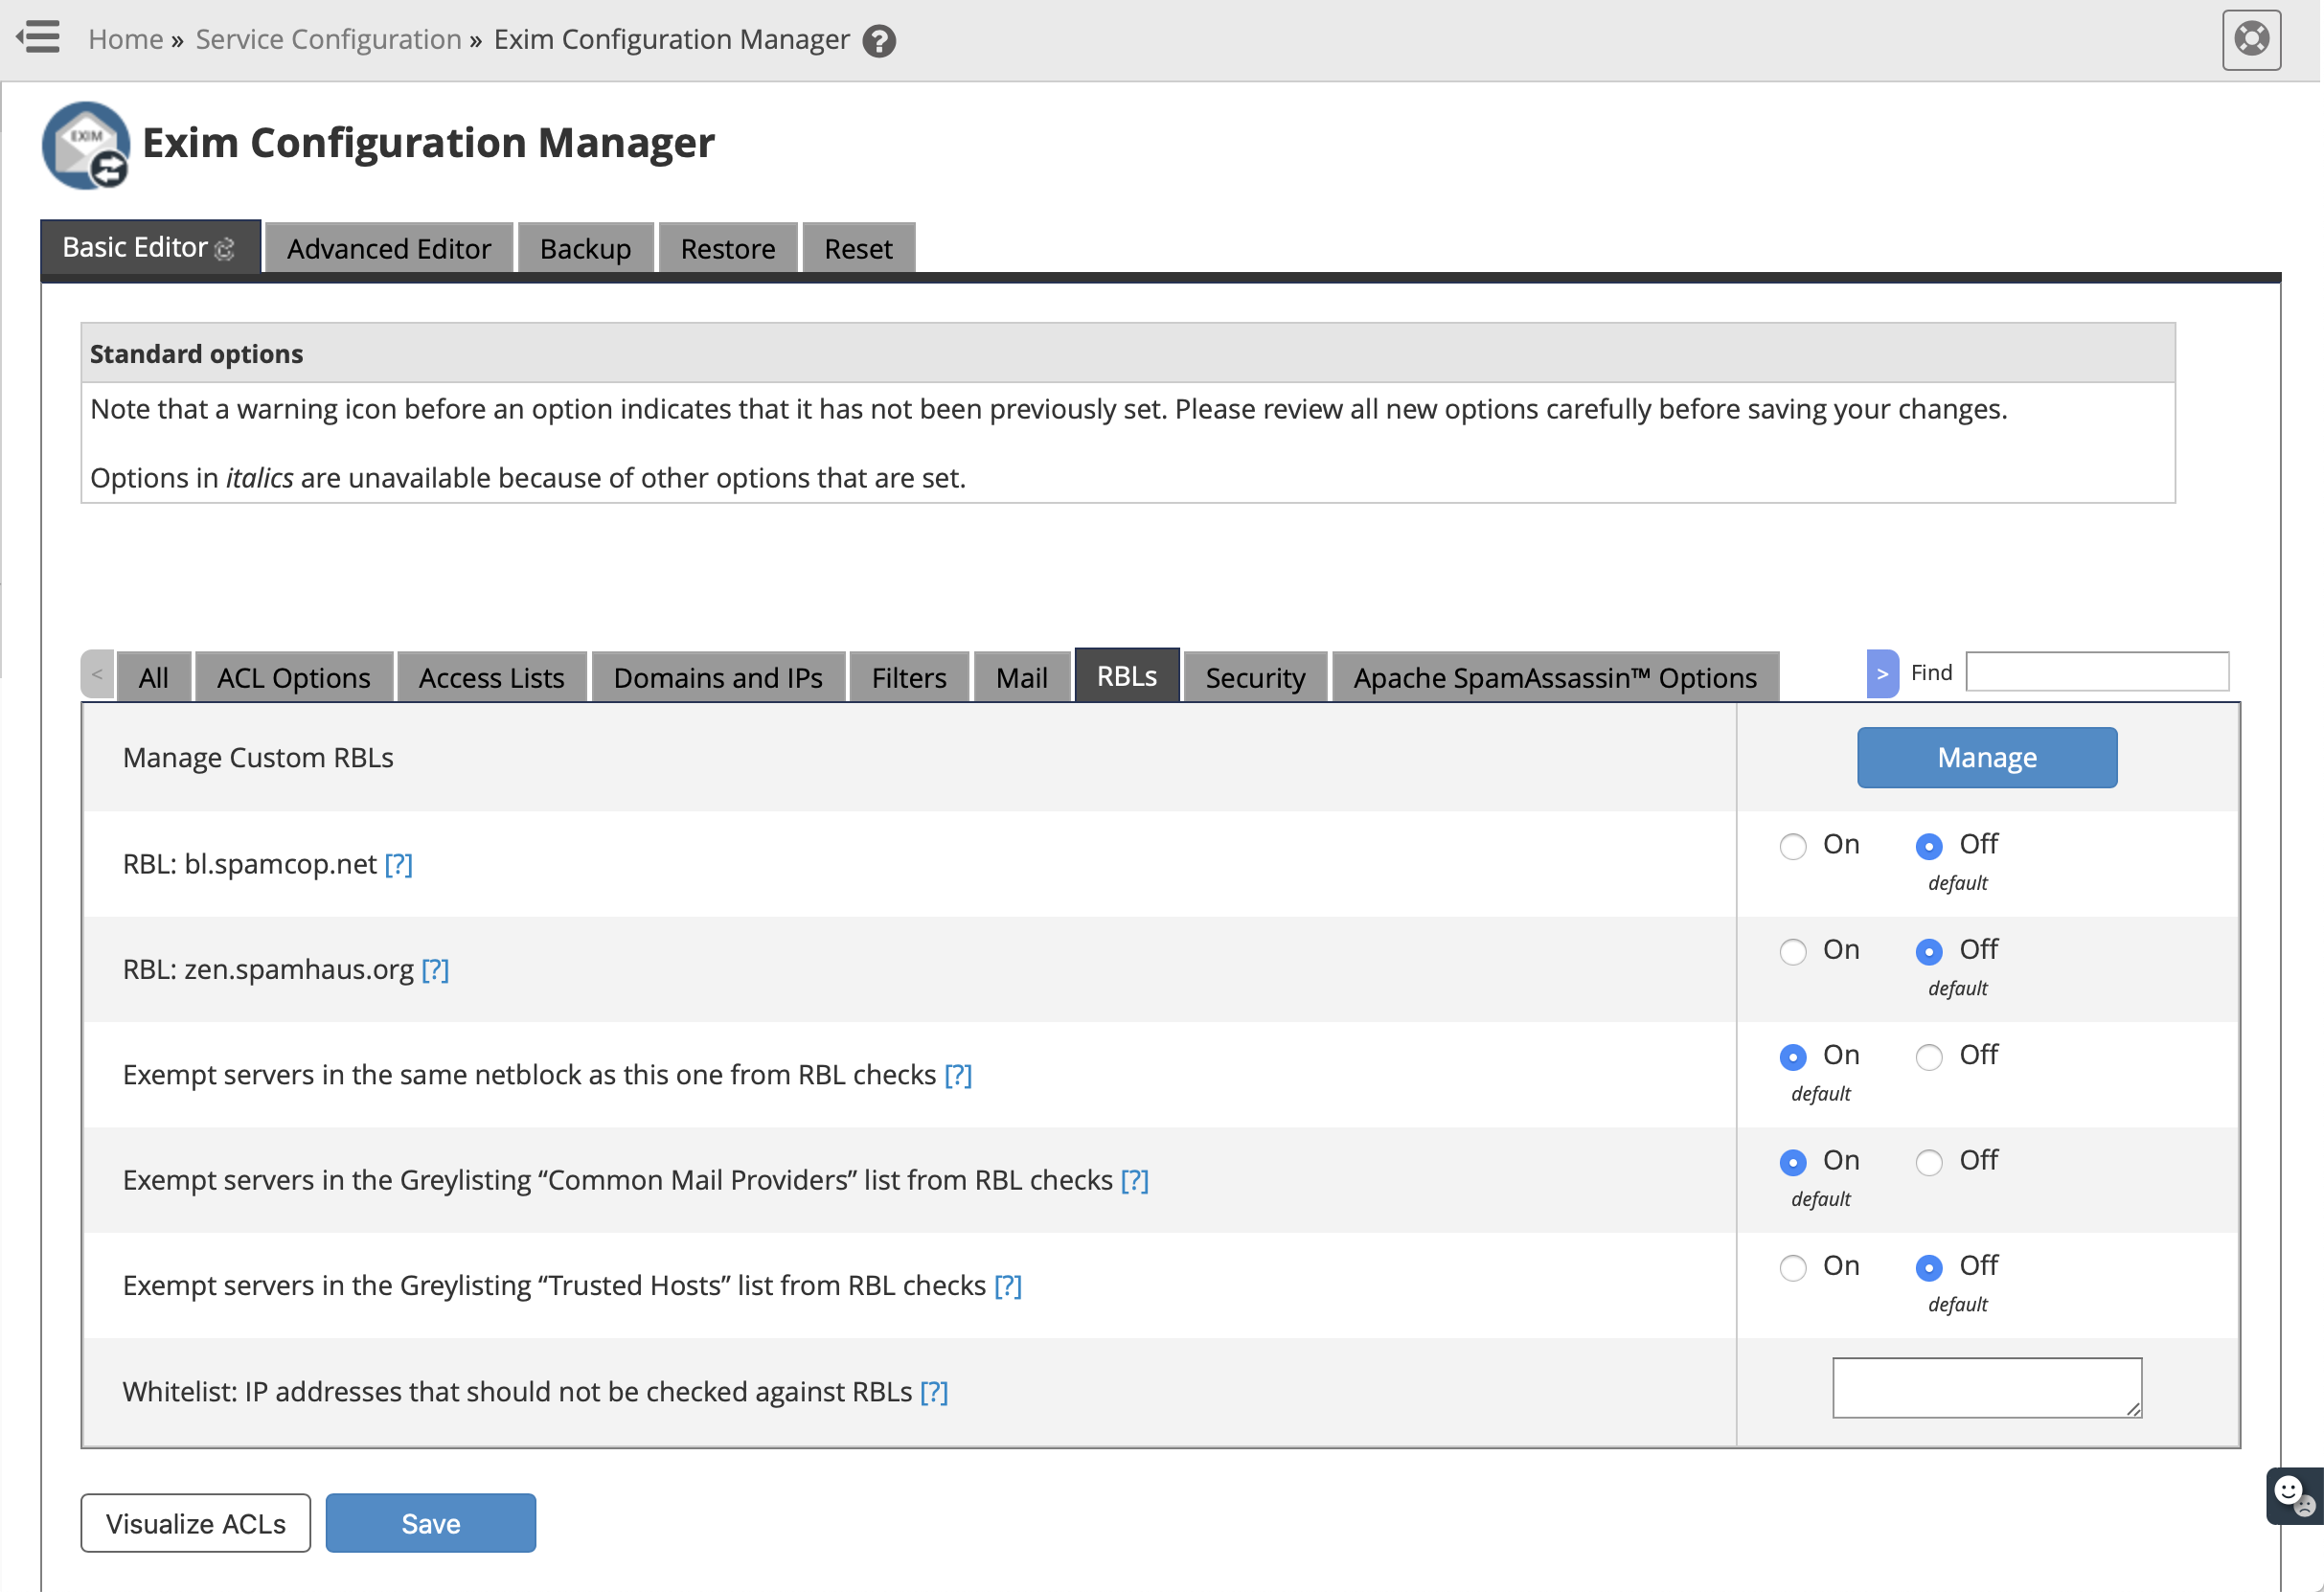 Exim Configuration Manager - Save